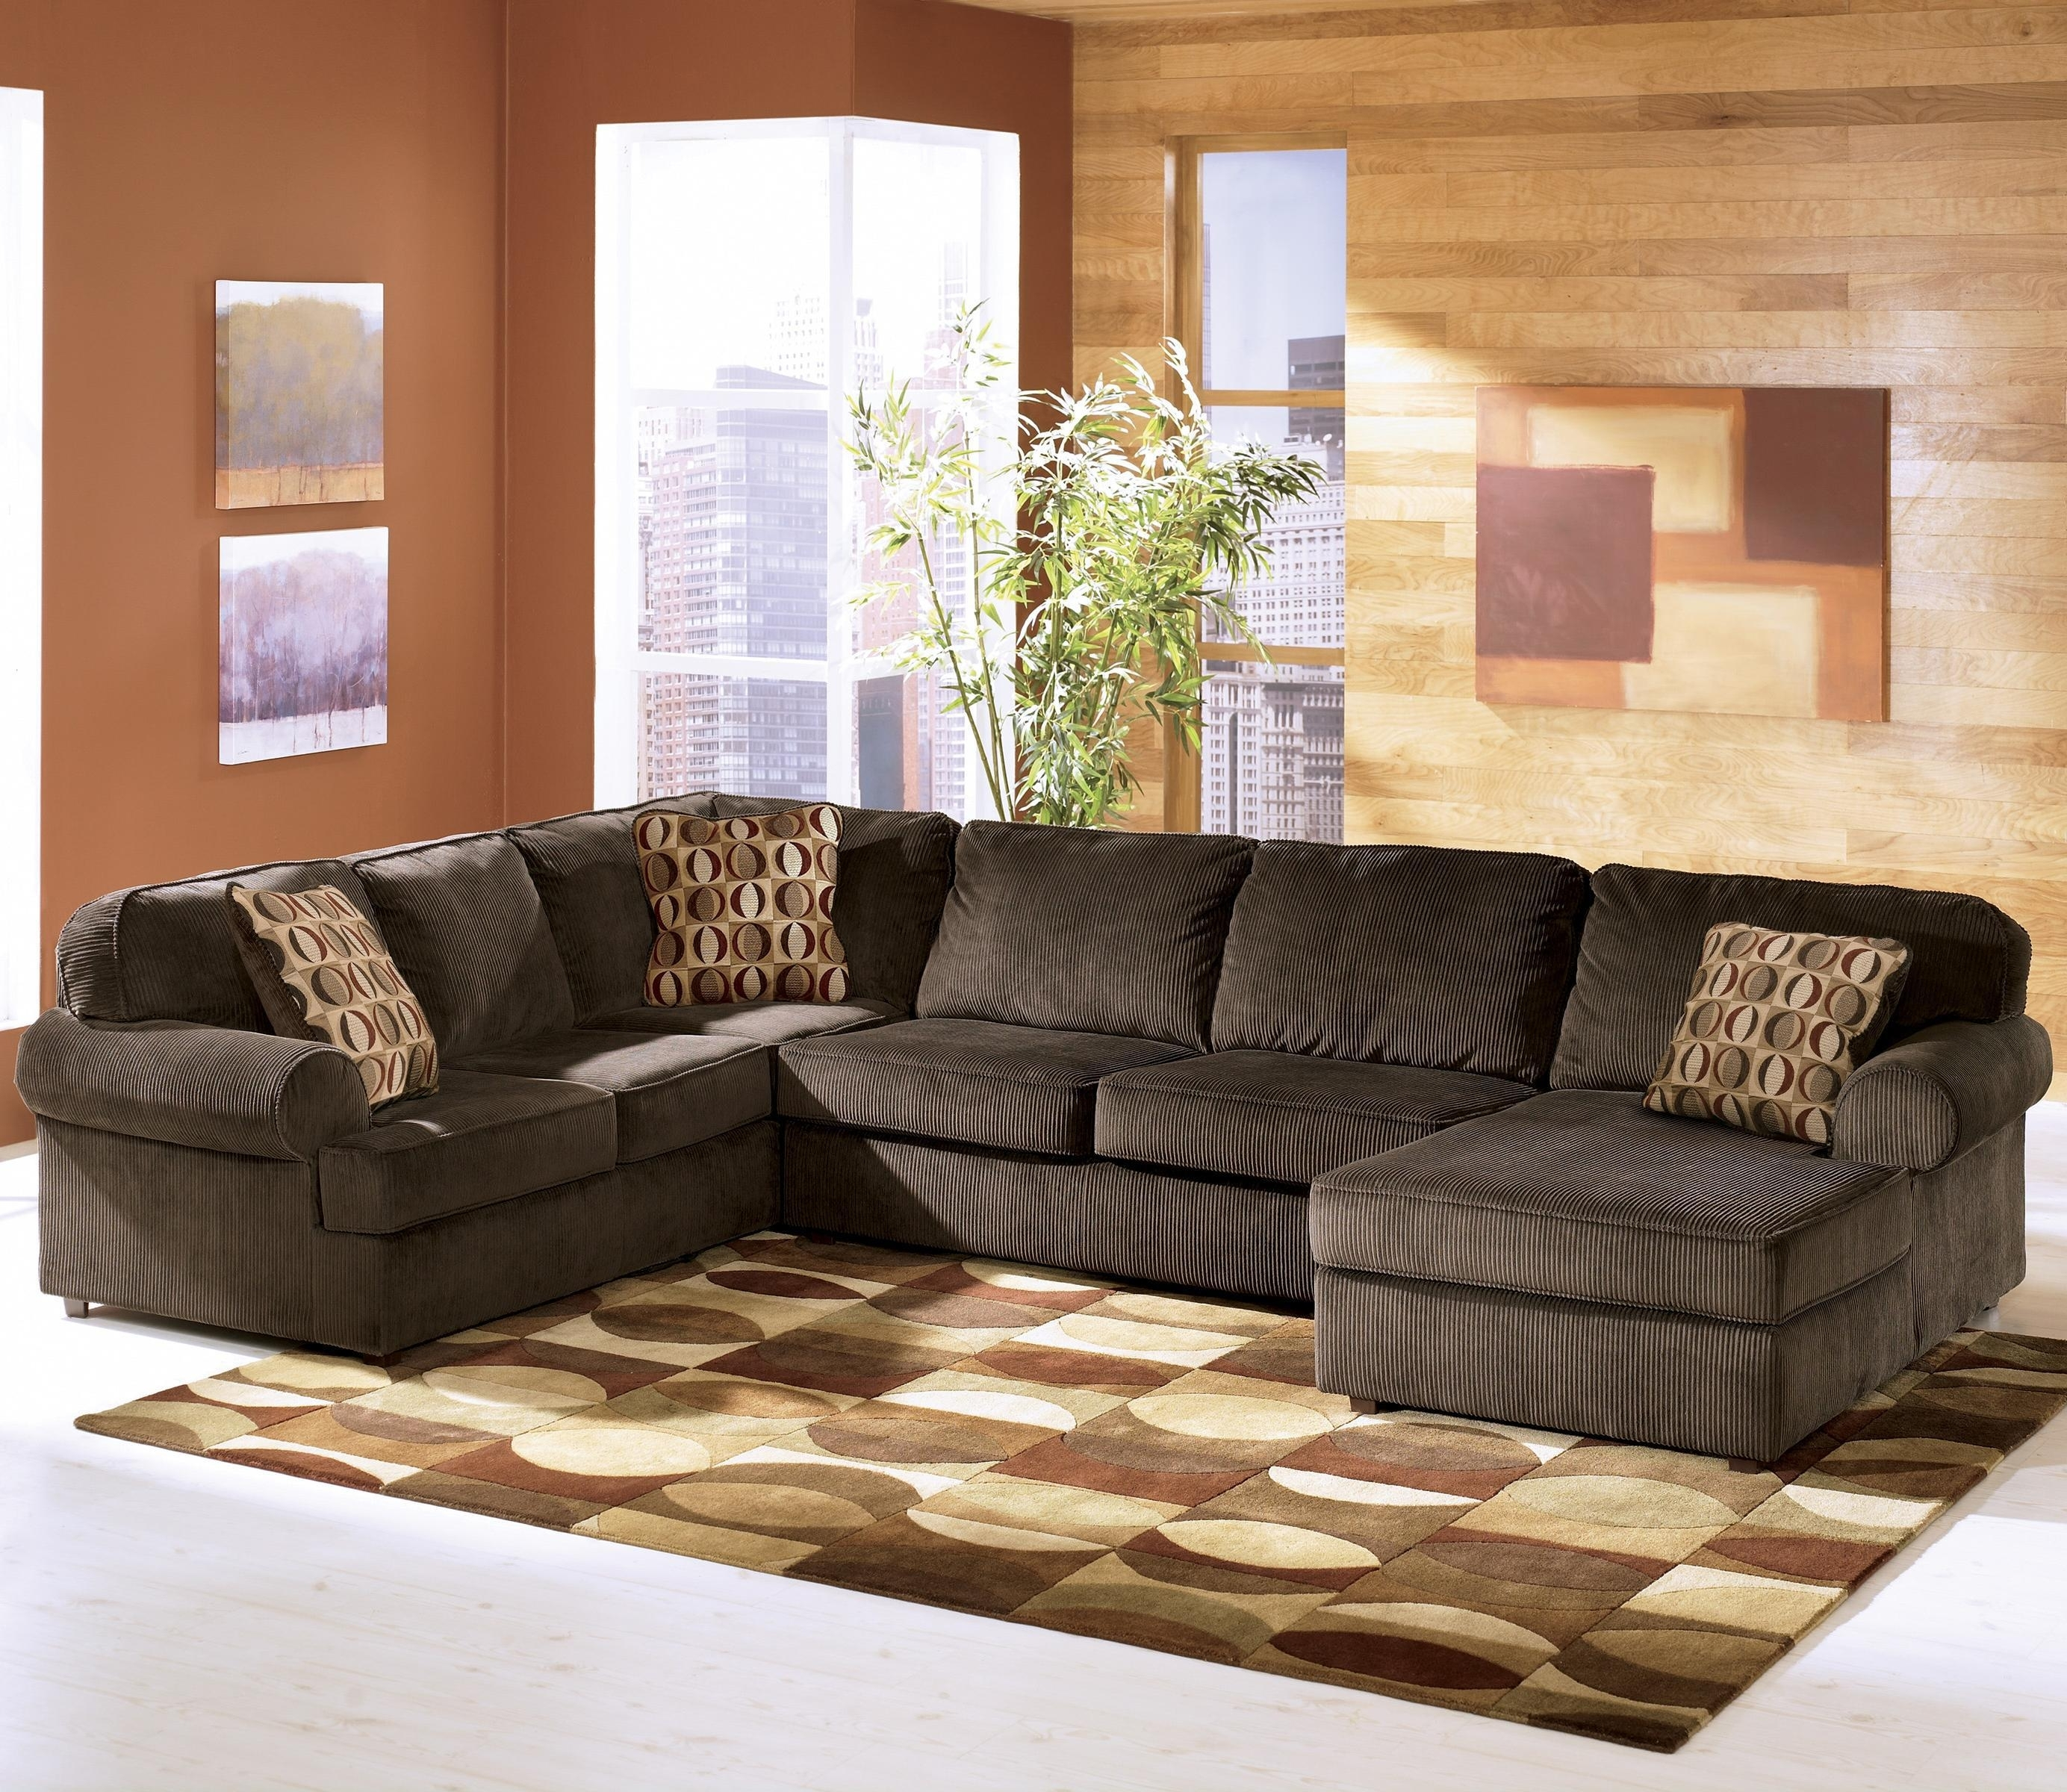 Aifaresidency Throughout Well Liked Sectional Sofas At Ashley Furniture (View 7 of 20)